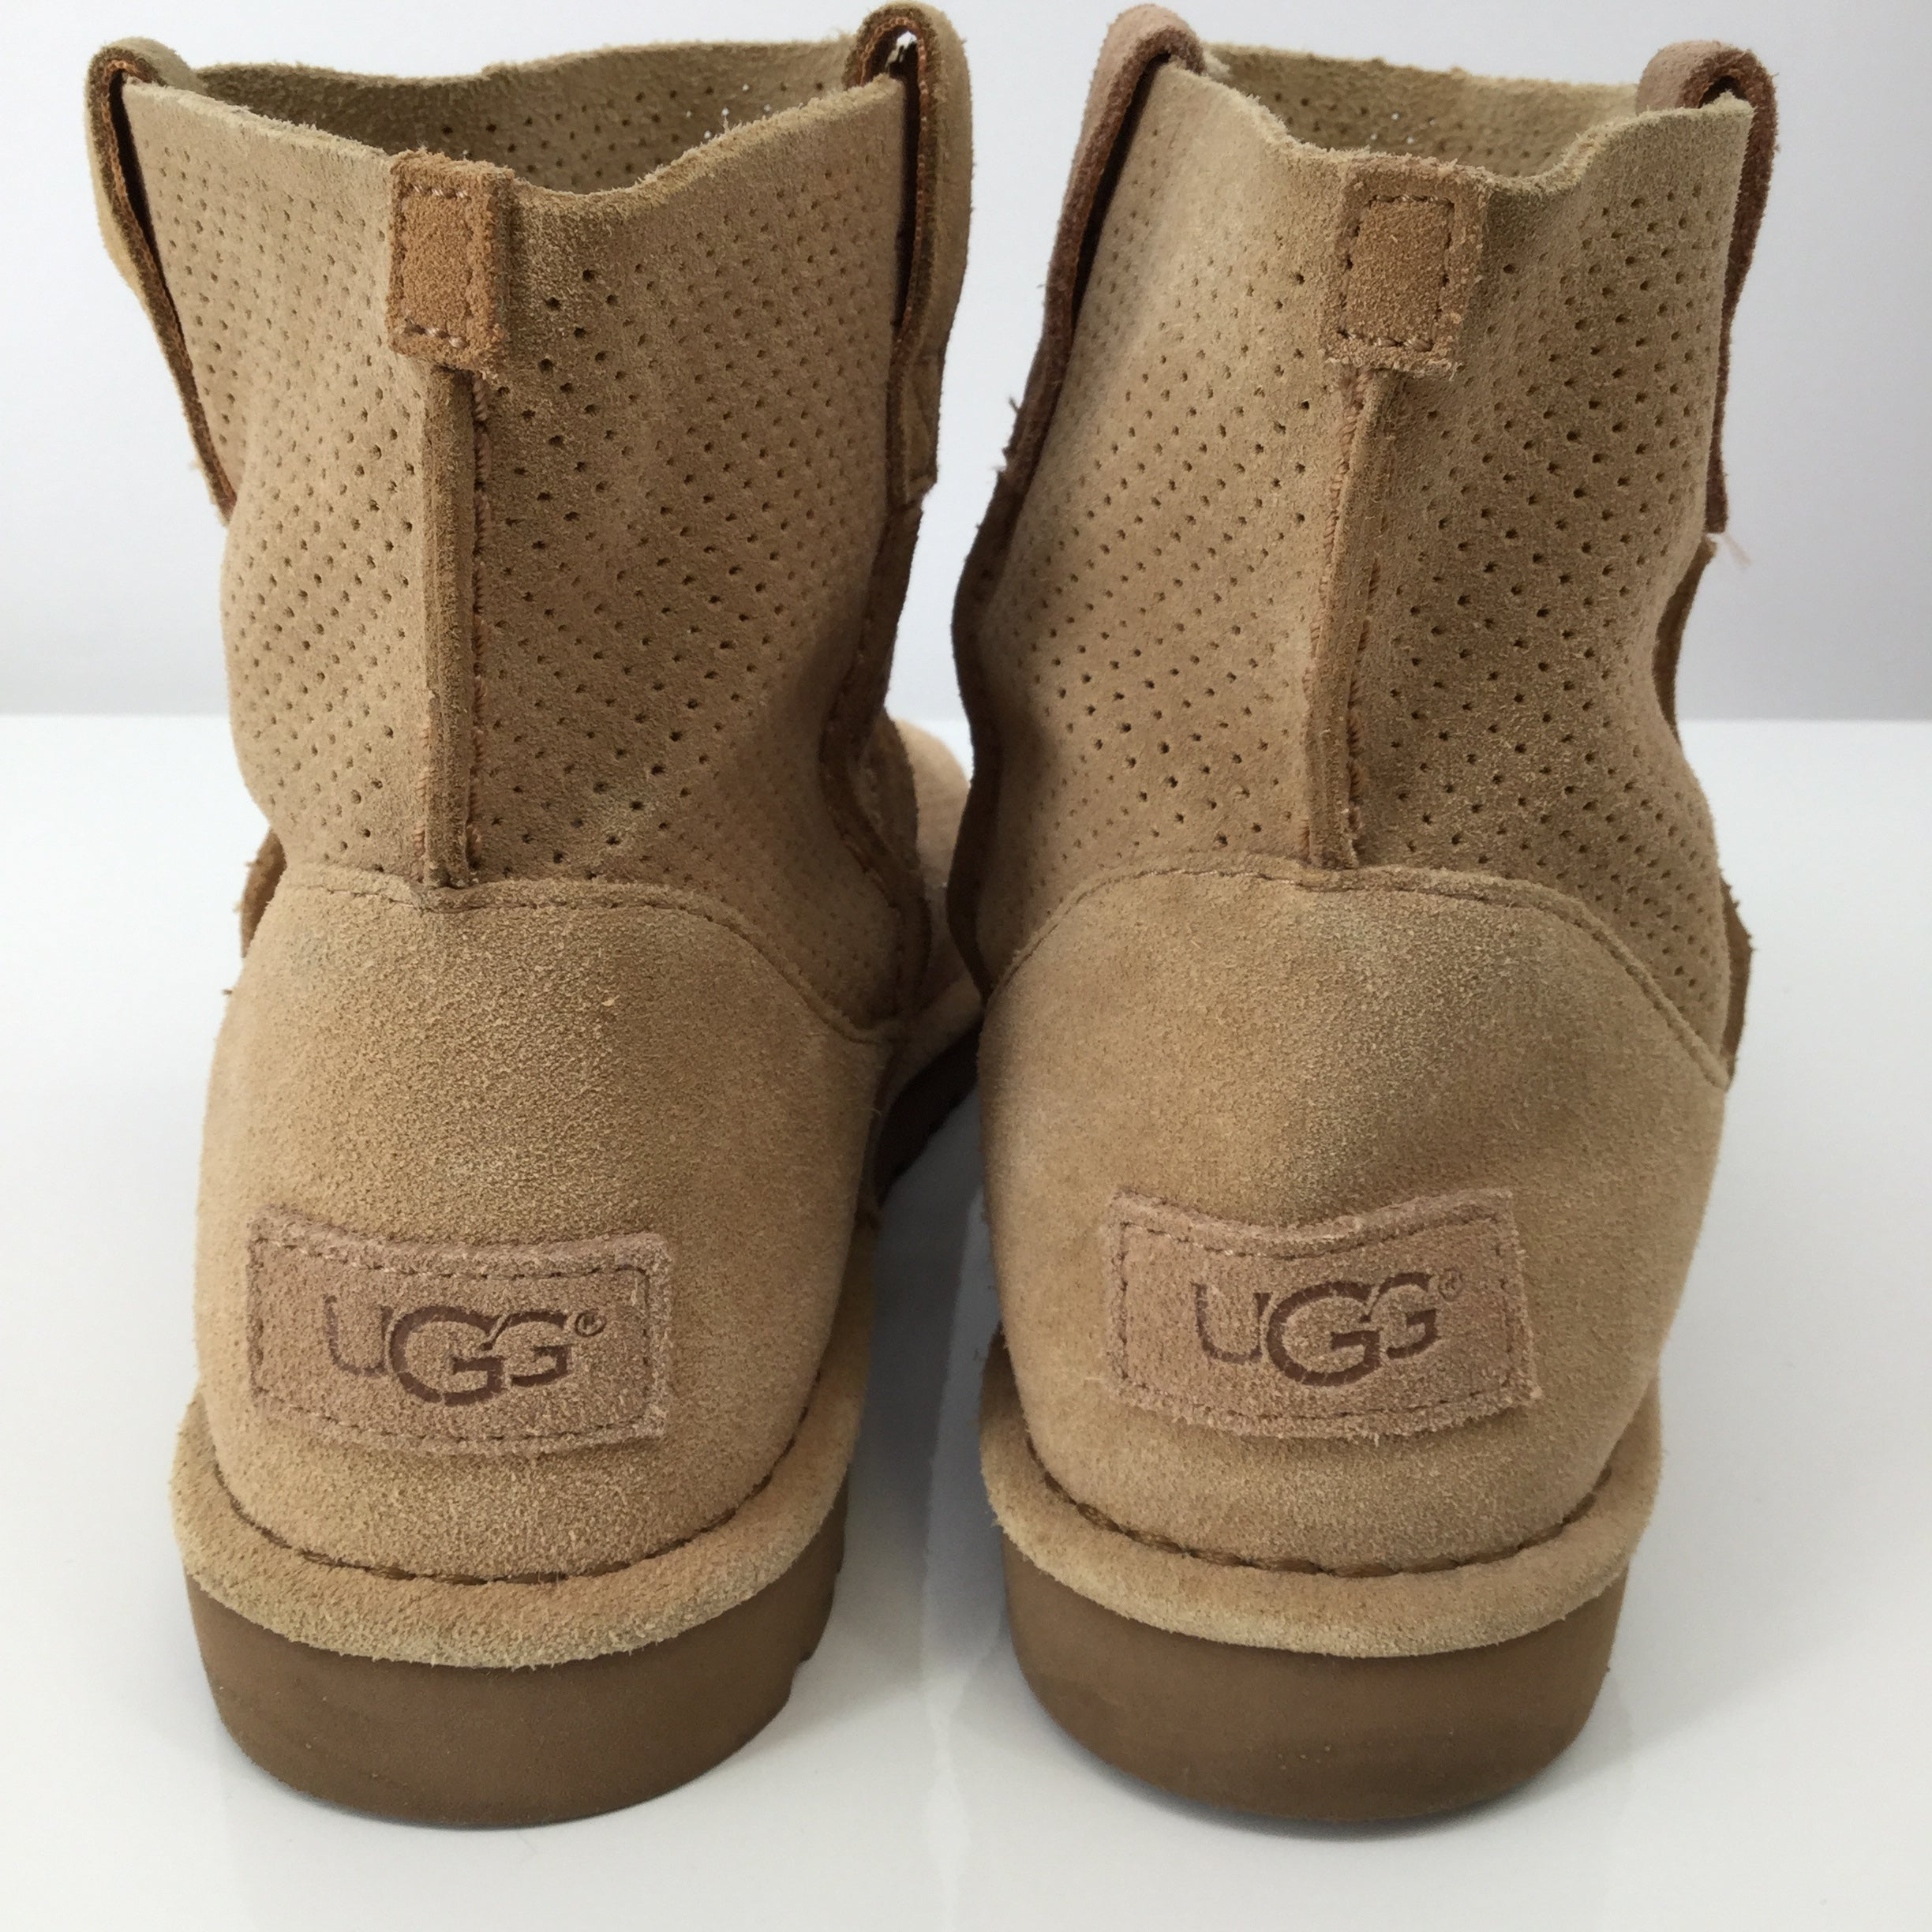 Tan Ugg Ankle Boots - CHECK OUT THESE SUPER CUTE TAN UGG ANKLE BOOTS! PERFECT FOR ALL SEASONS, IF YOU WILL. SOME MINOR CONDITION (PILLING) AND A SMALL STAIN ON THE OUTSIDE OF LEFT SHOE (SEE PHOTOS).